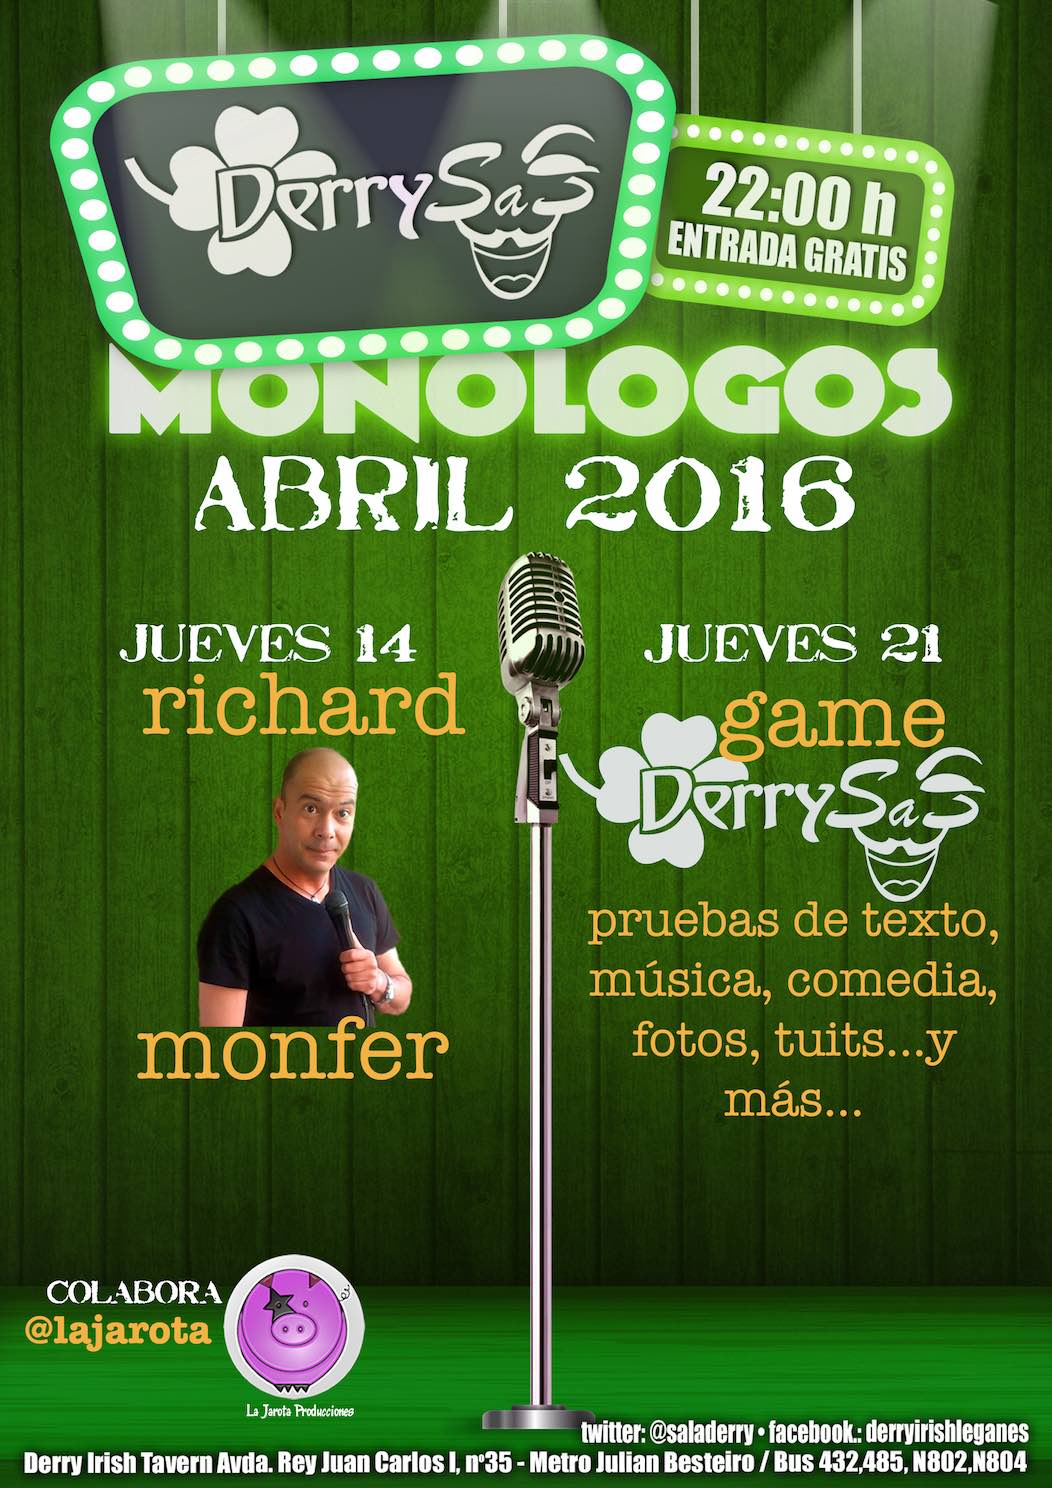 Derry Irish Tavern: Programación Abril 2016